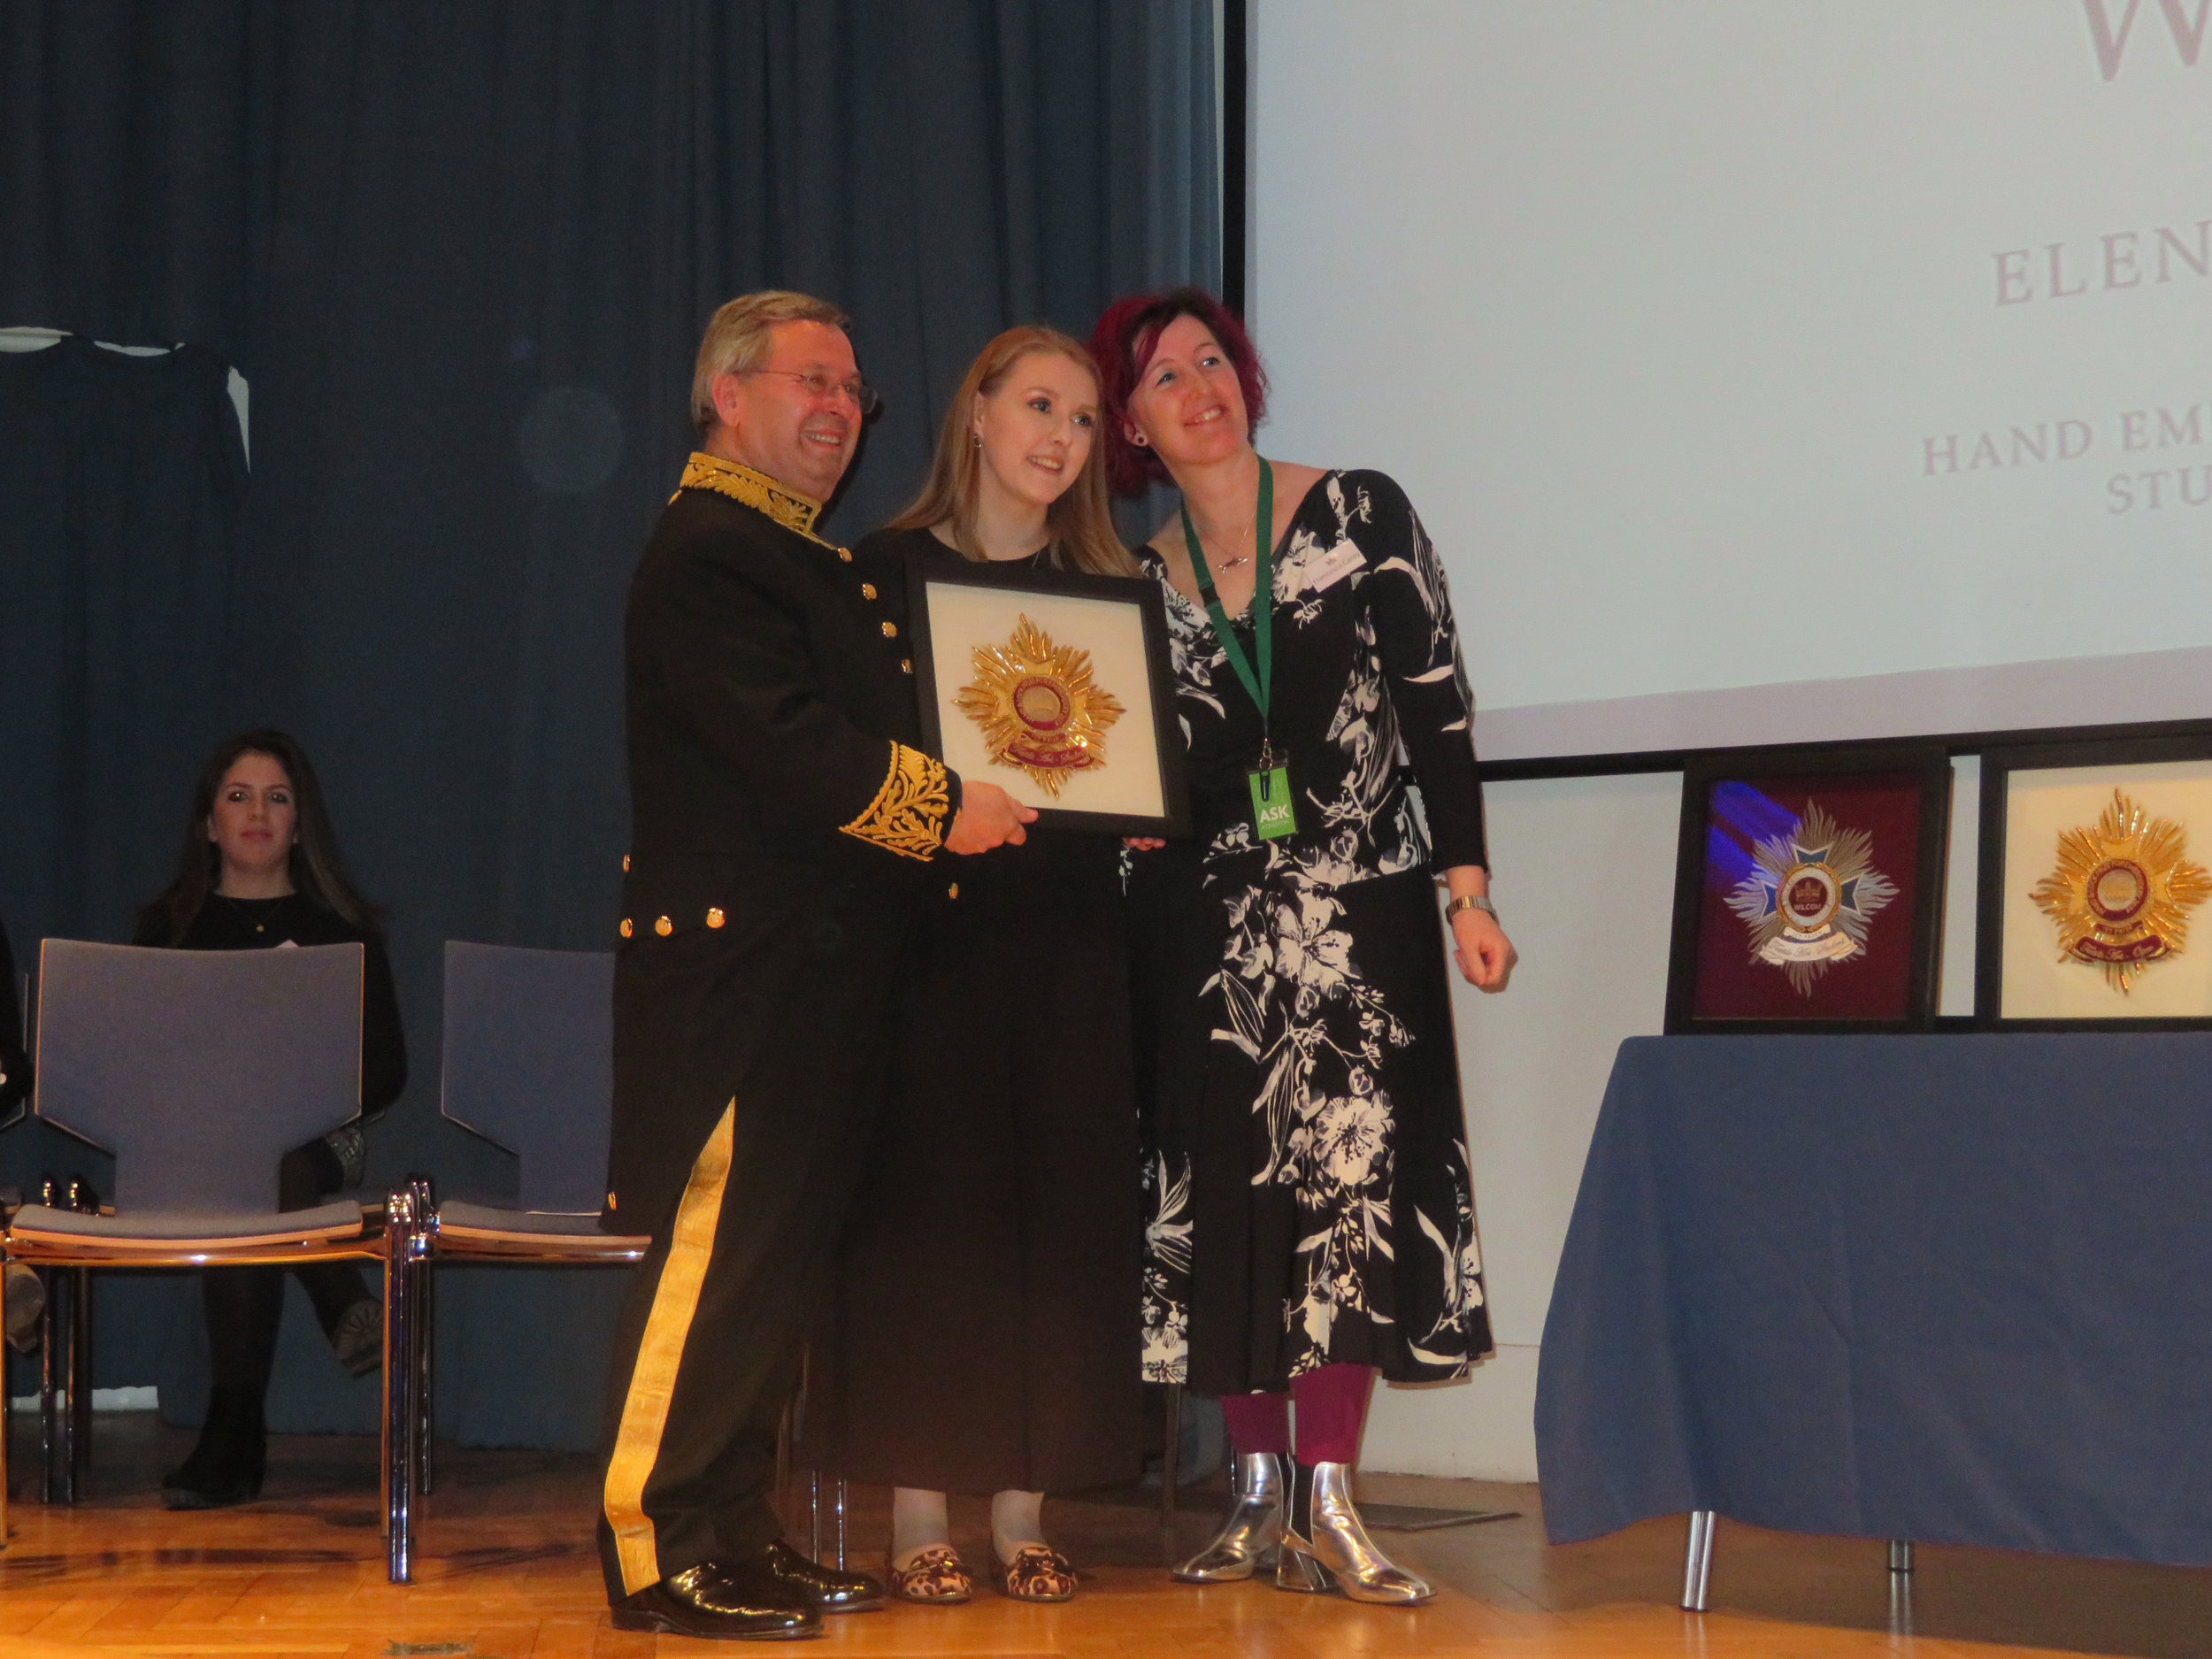 Chairman Alastair Macleod presenting Elena with Gold Award Student Textile with Representative of Brishopsgate Institute